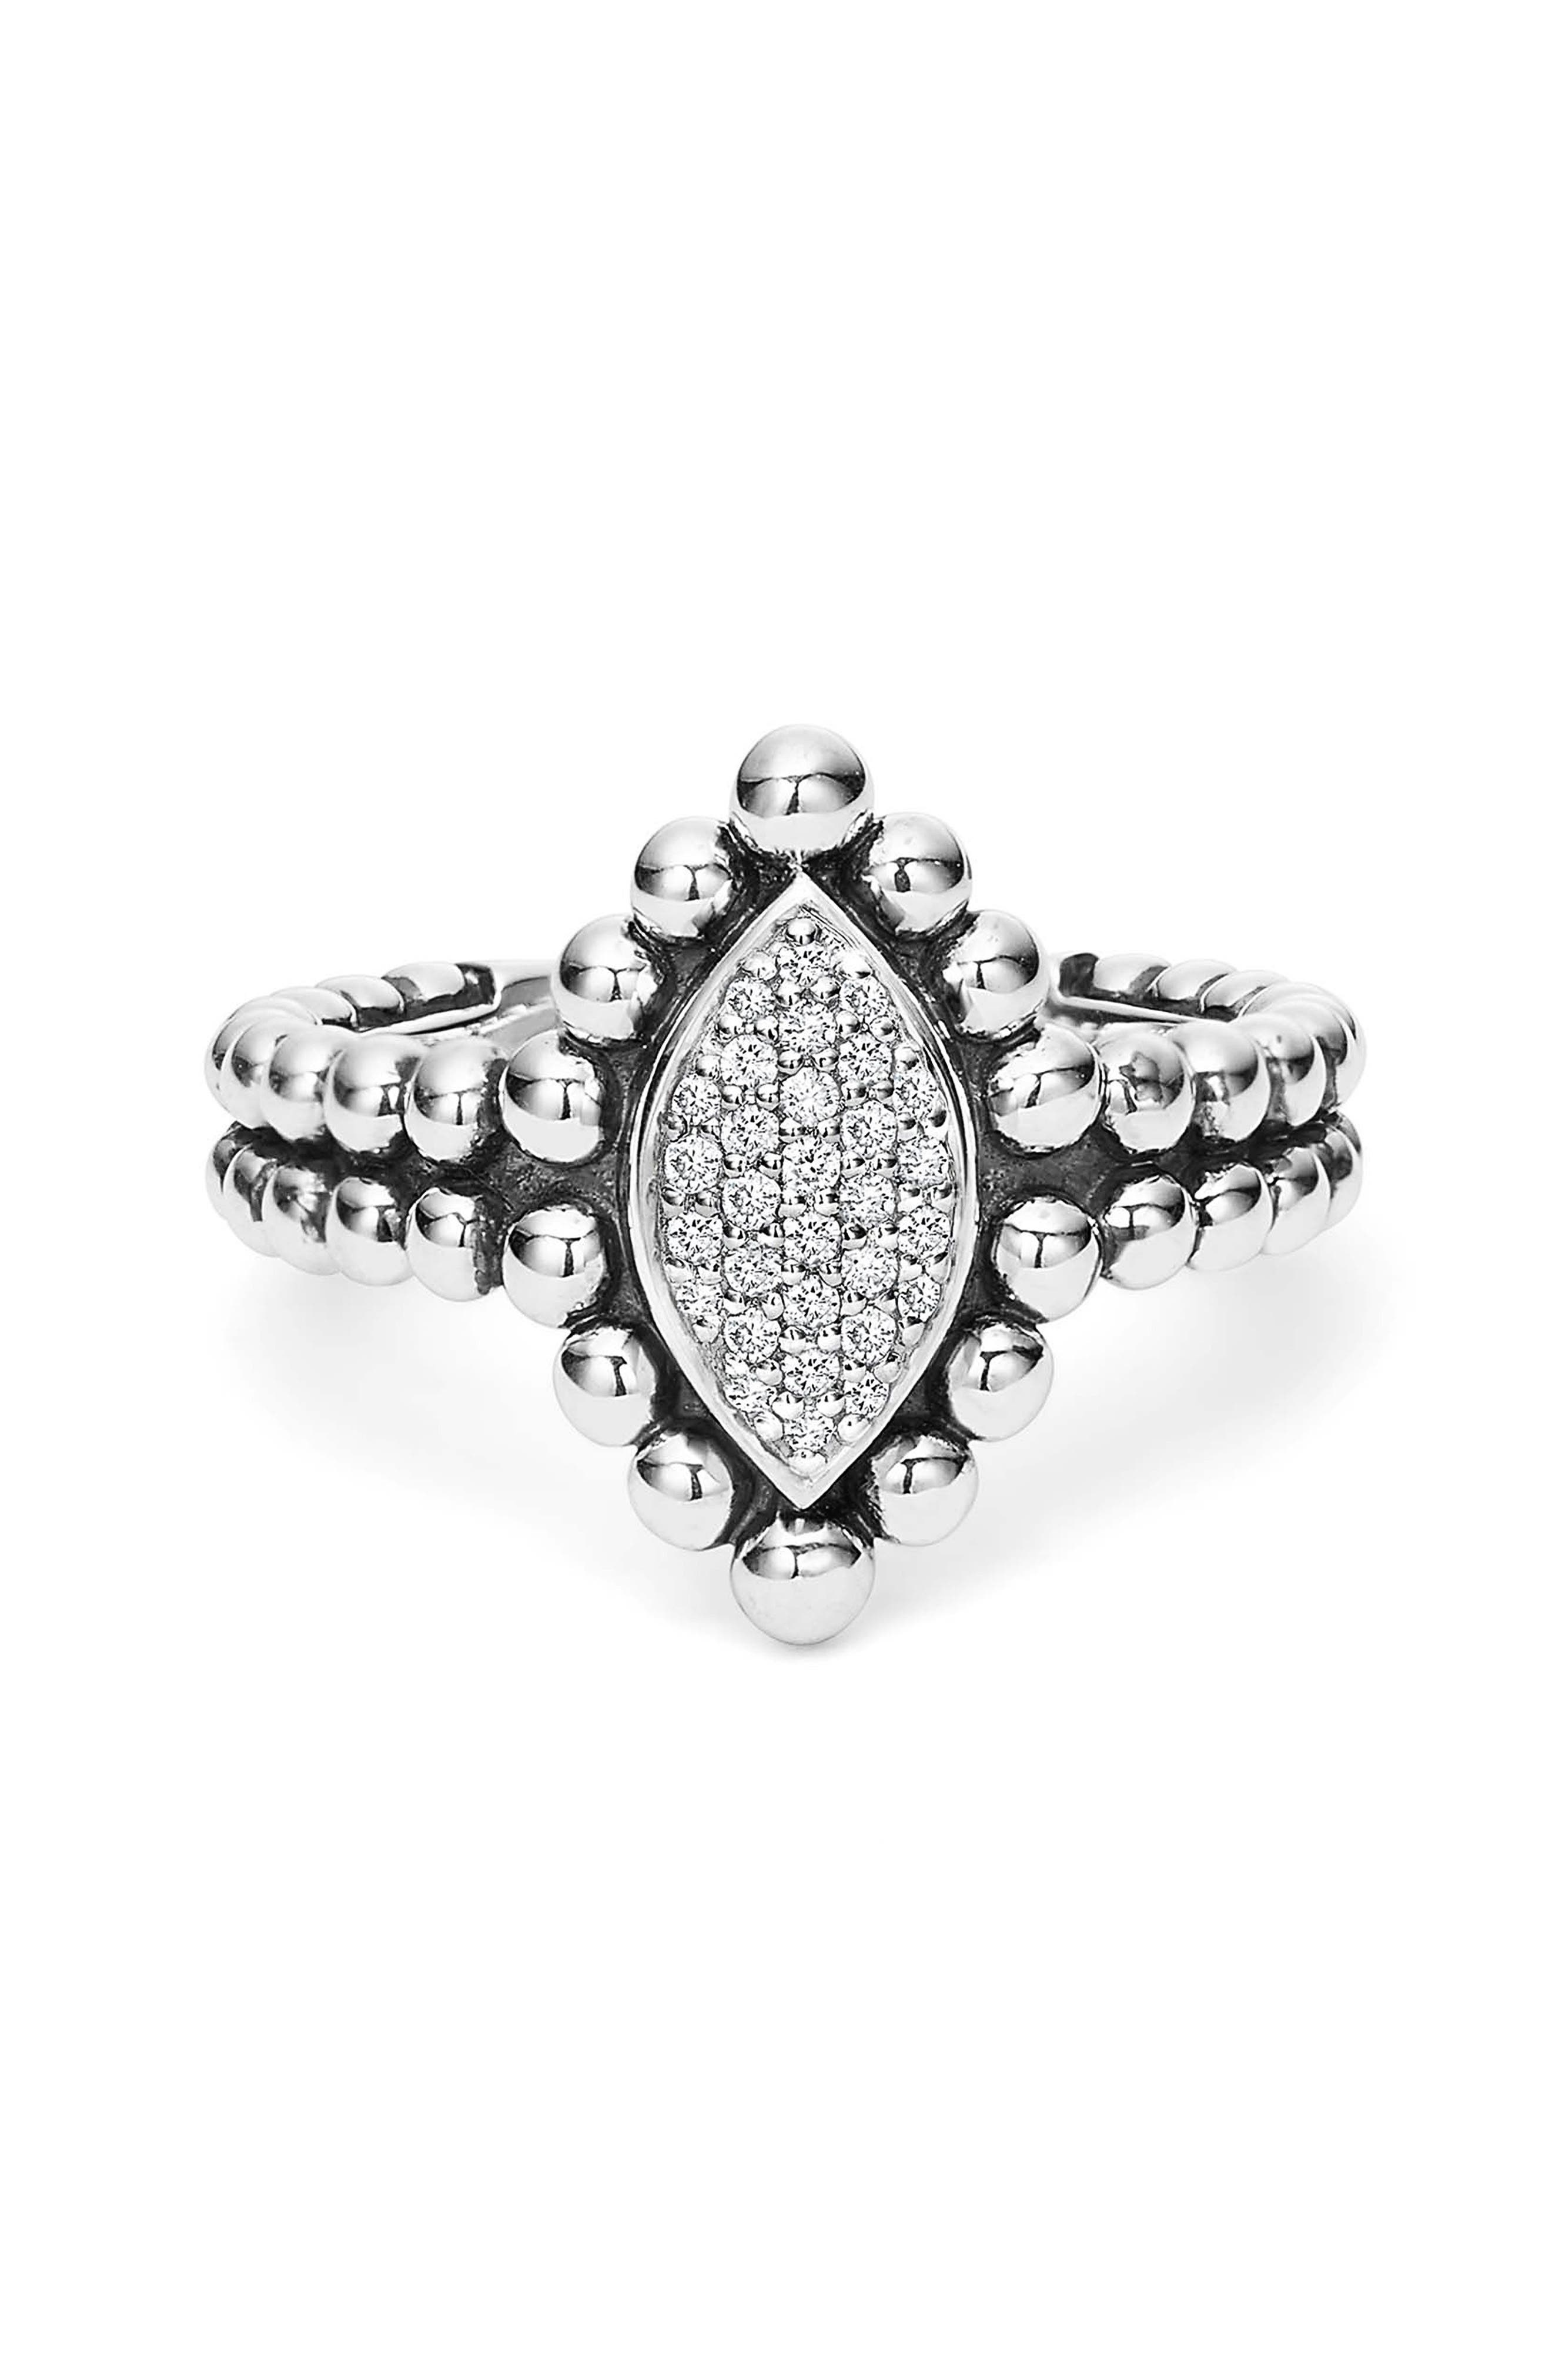 Caviar Spark Diamond Marquise Ring,                             Alternate thumbnail 2, color,                             SILVER/ DIAMOND